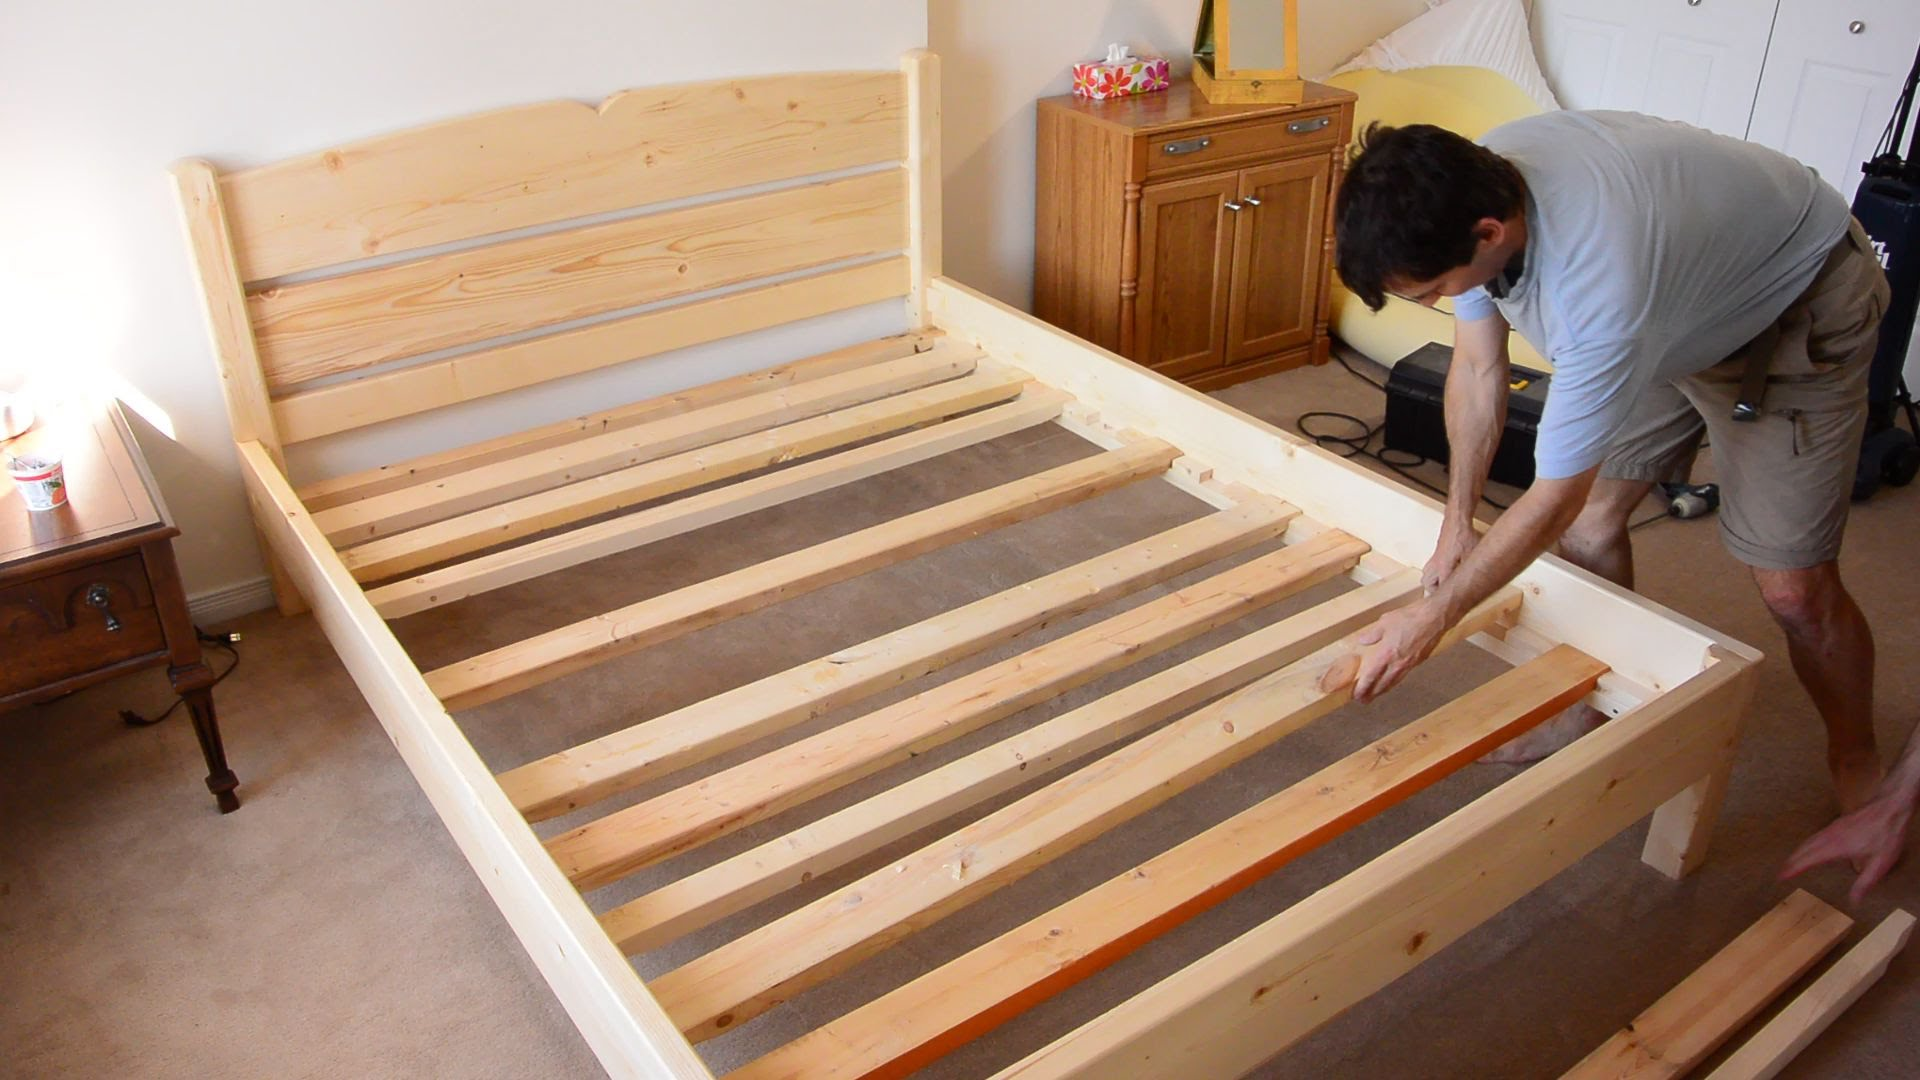 How To Build A King Size Platform Bed Frame With Drawers